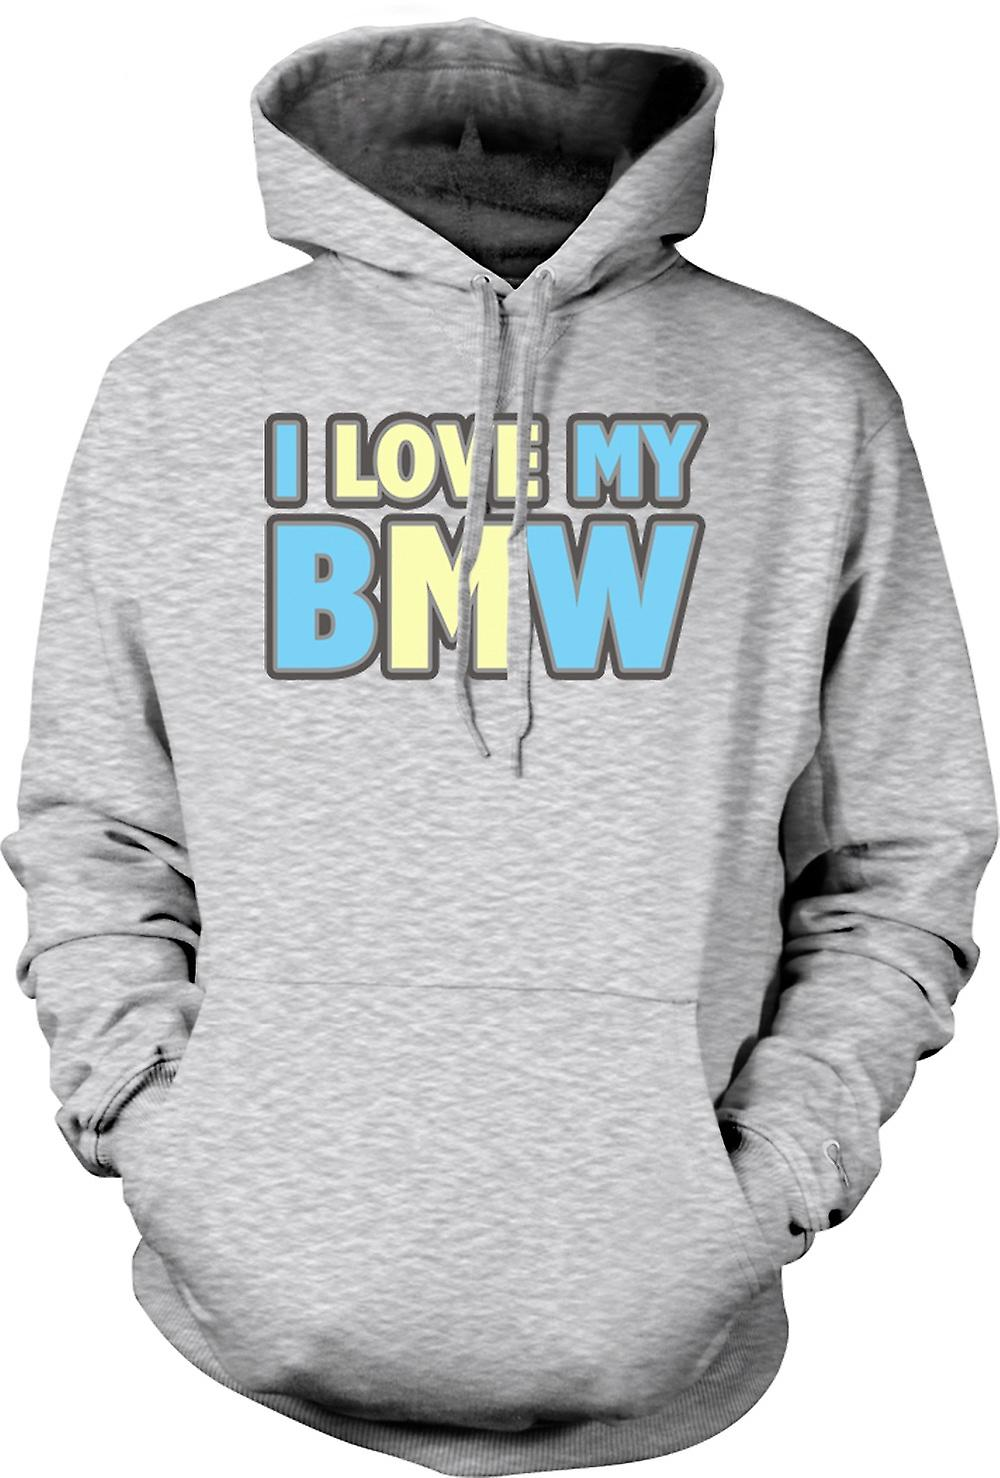 Mens Hoodie - I Love My BMW - Car Enthusiast